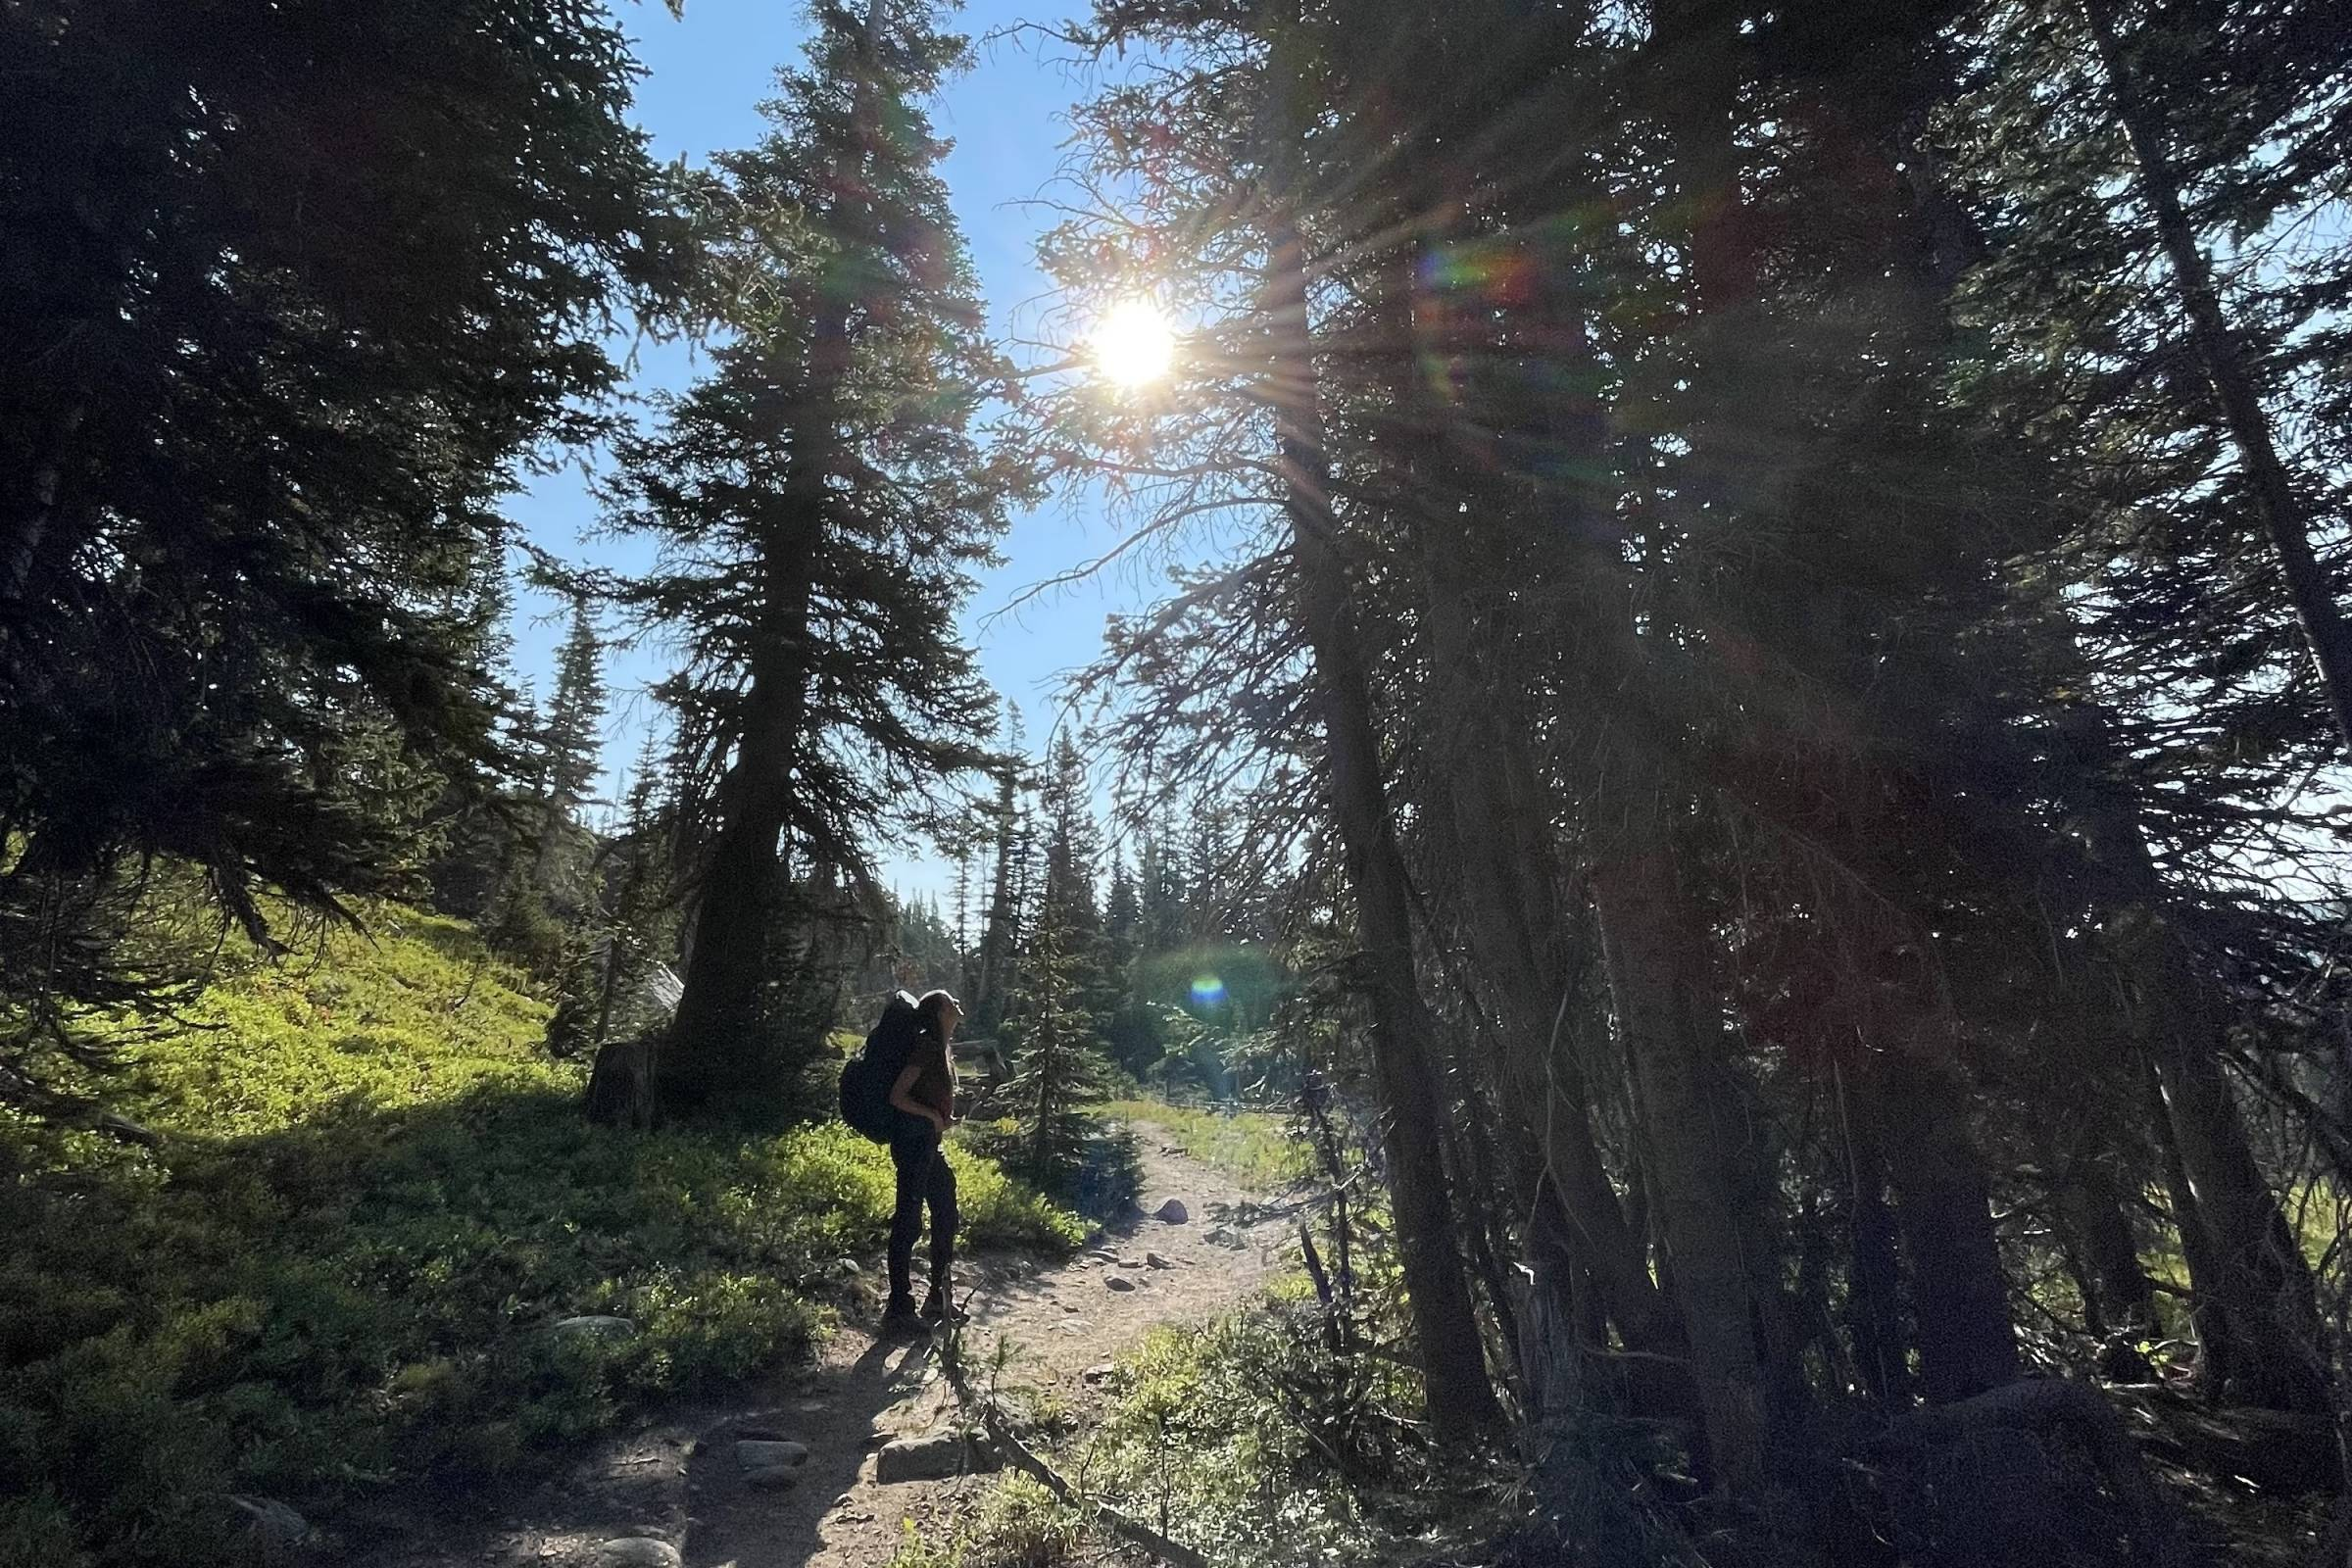 a female hiker wearing a backpack standing on a dirt singletrack trail and gazing up at large pine trees